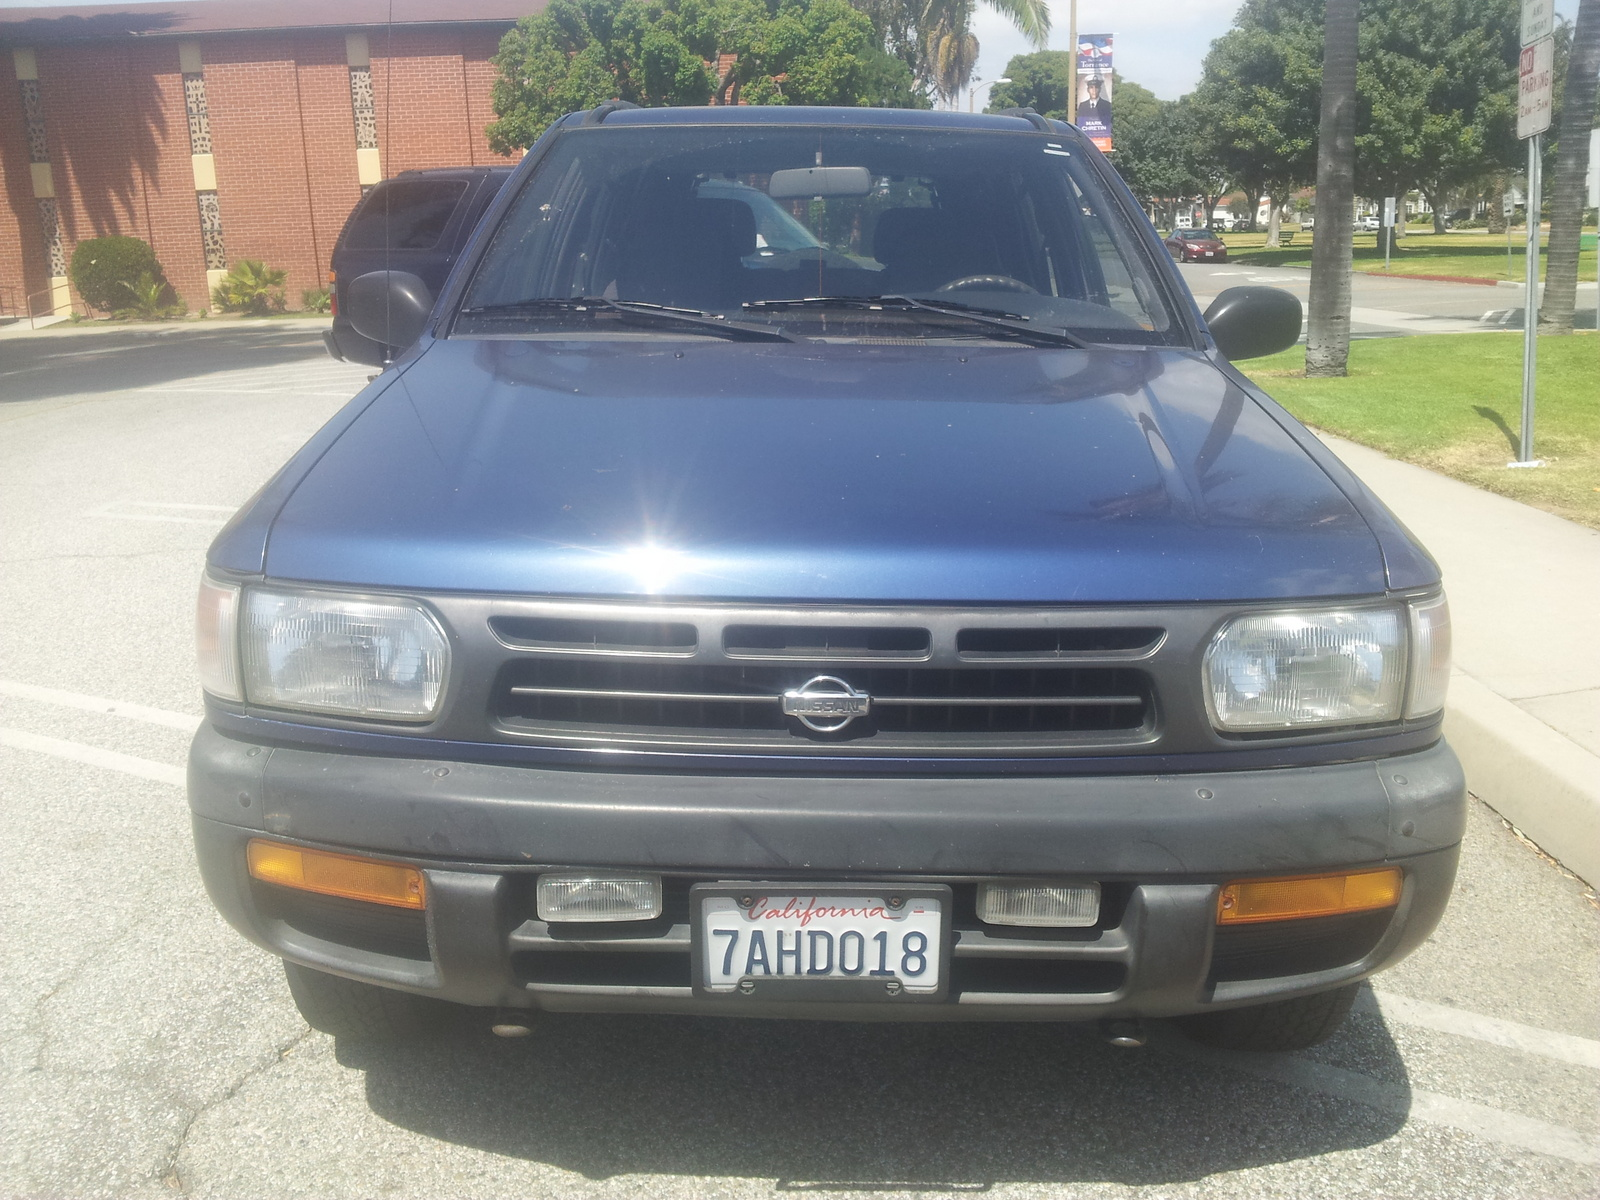 Picture of 1996 Nissan Pathfinder 4 Dr XE 4WD SUV